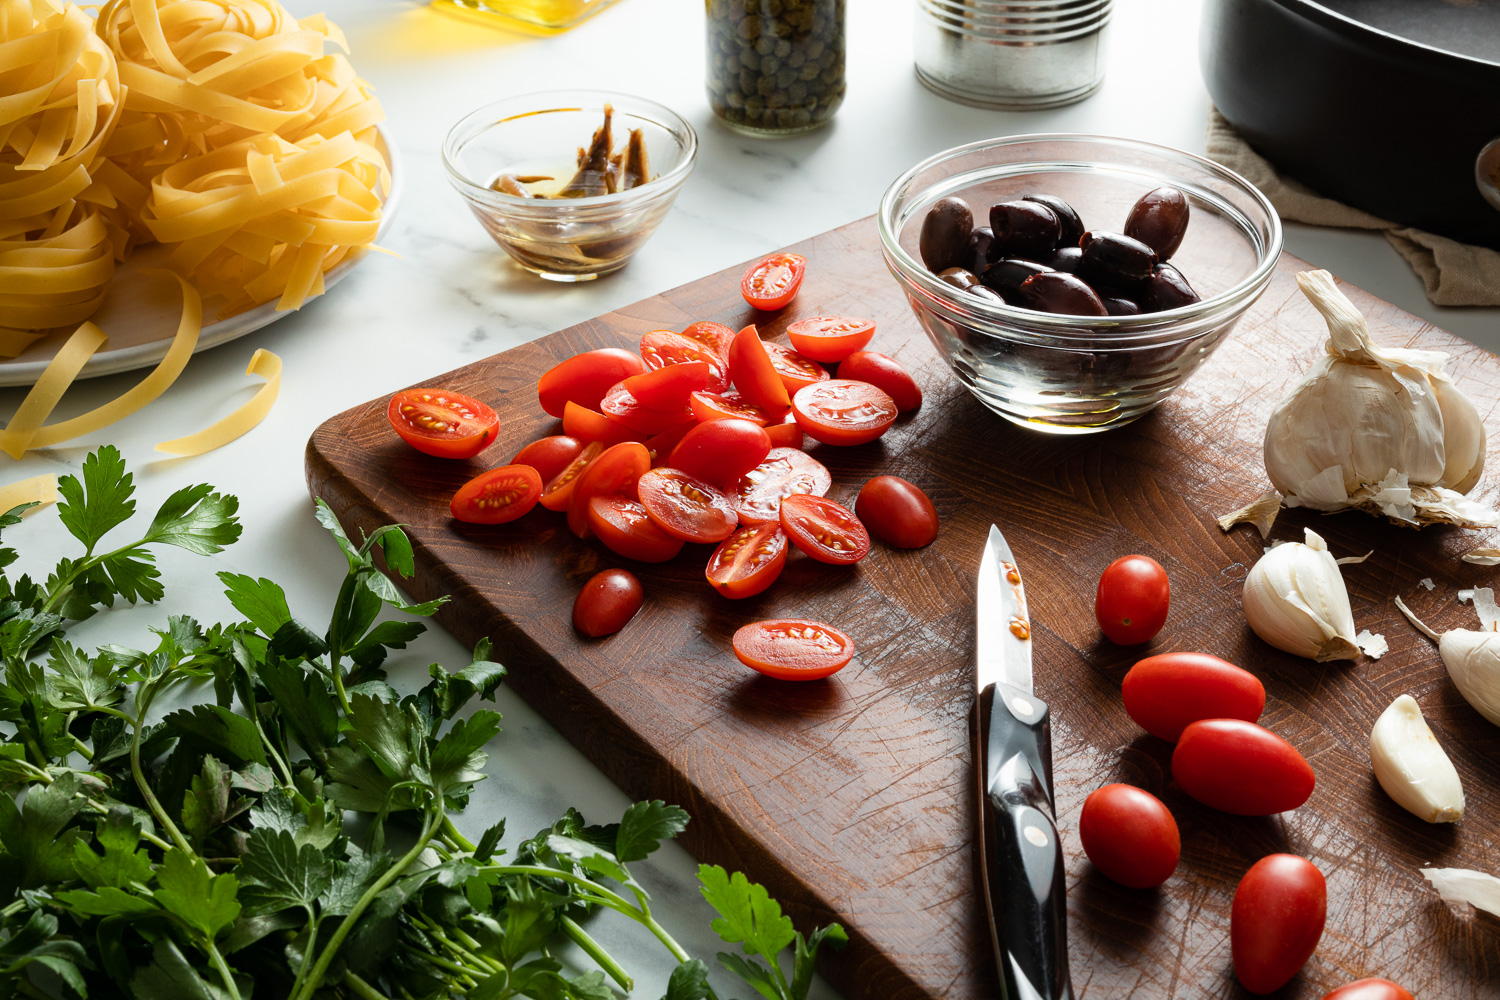 tomatoes, olives, garlic, and a paring knife on a cutting board with parsley and pasta